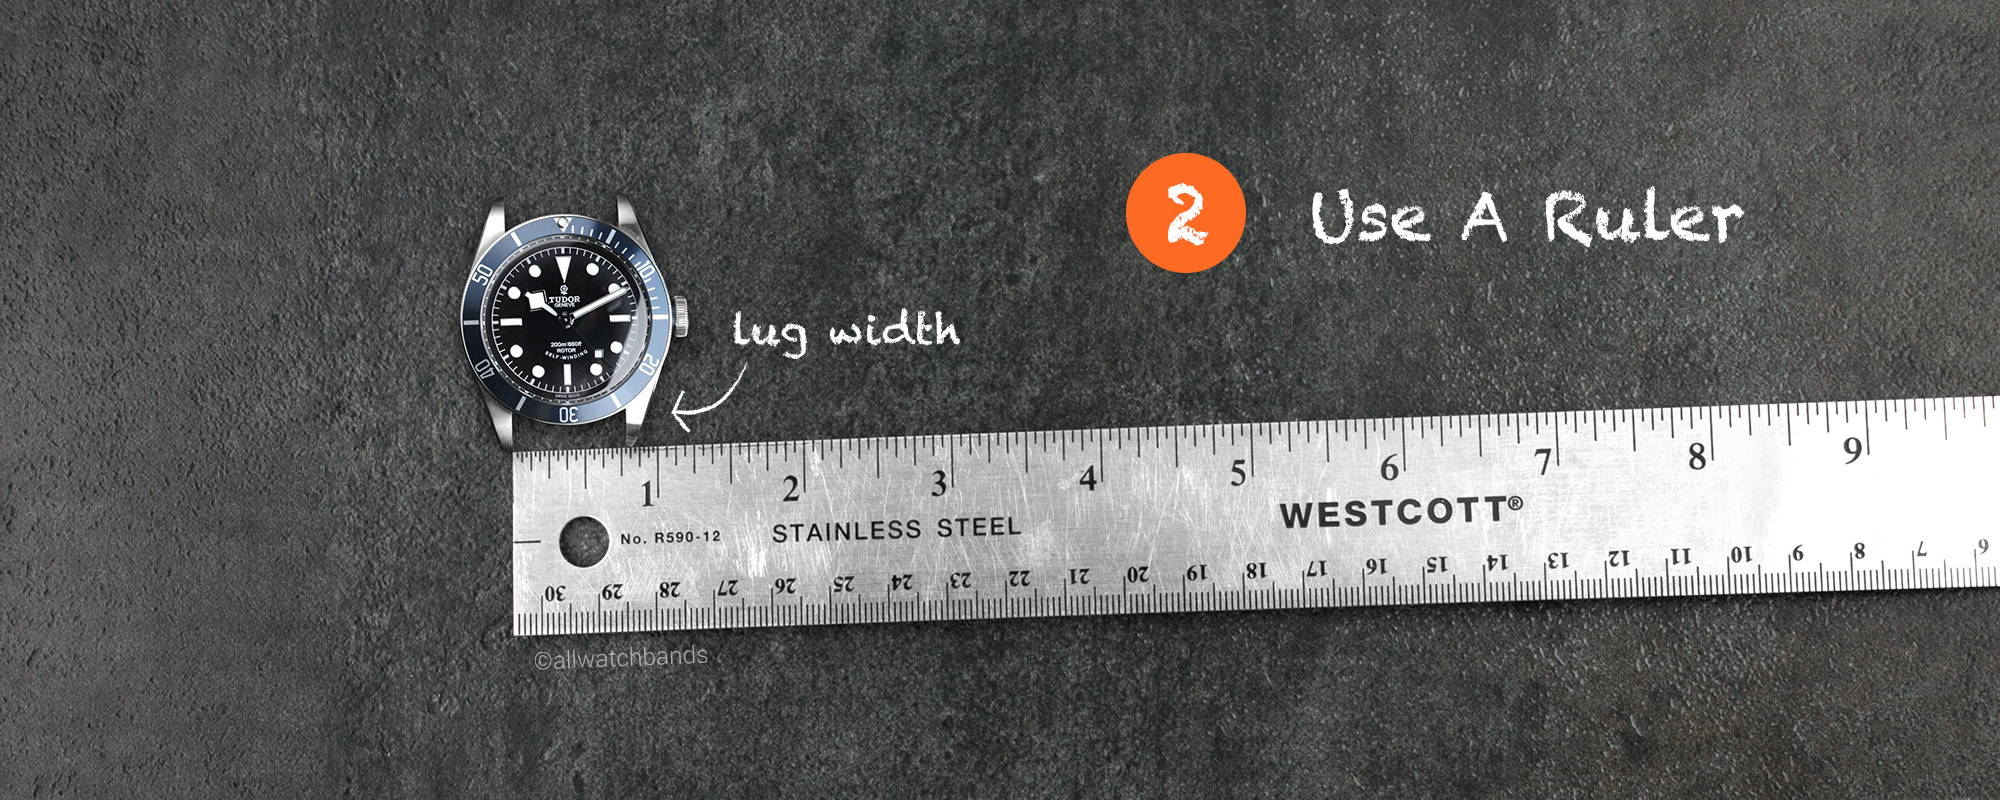 use a ruler to measure watch band length